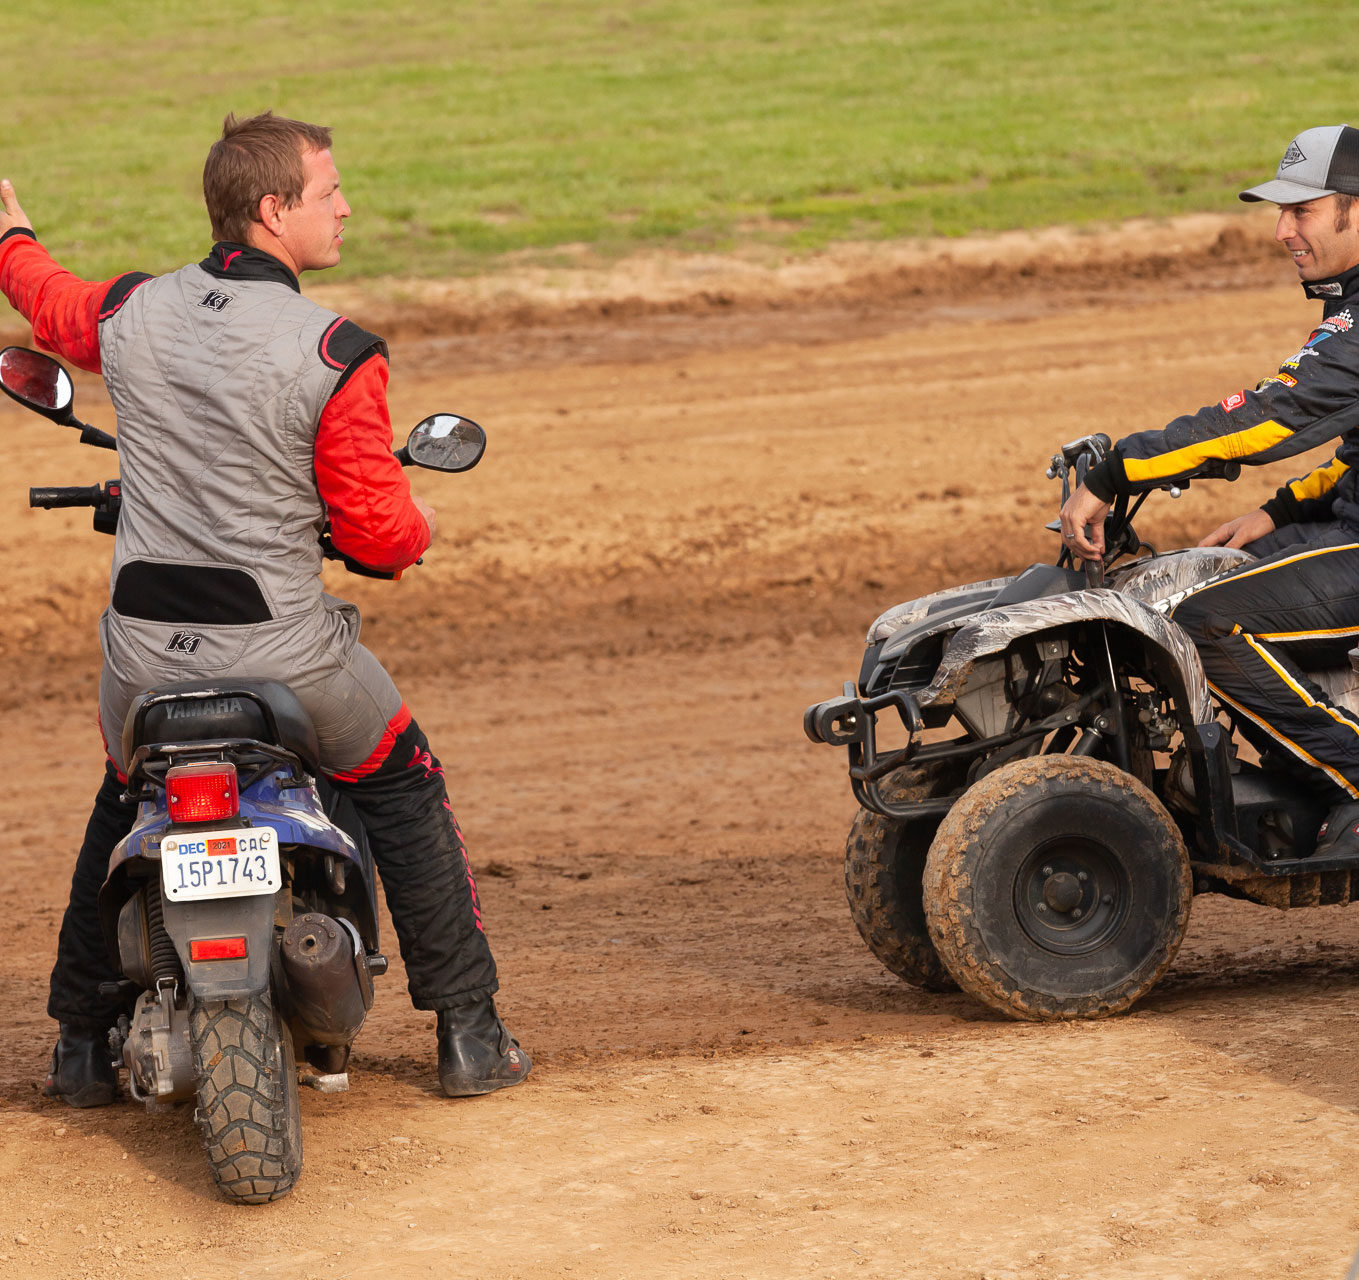 Sprint drivers J.J. Hickle (left) and Derek Hagar (right) chit chat during track prep on Sunday of the Lake Ozark Speedway Memorial Weekend Sprint and Midget Nationals. ( Jeffrey Turford / TDP )